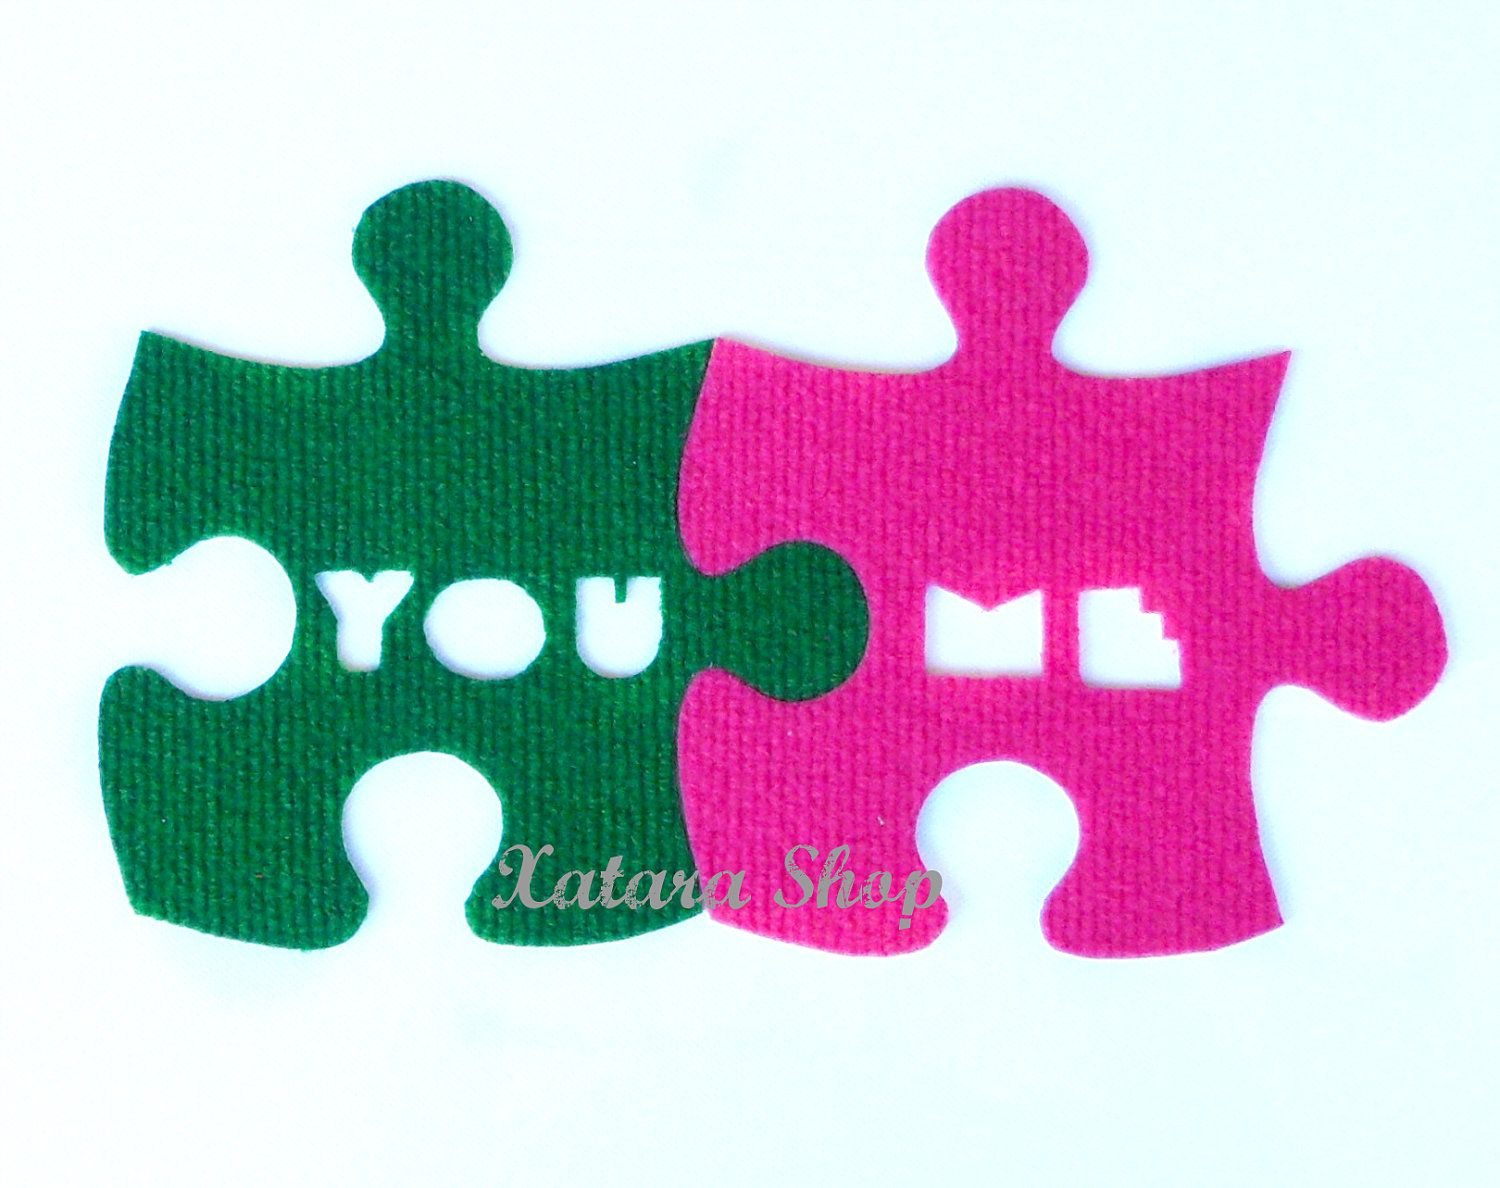 Puzzle Rug Design With Words You Me Custom Shape